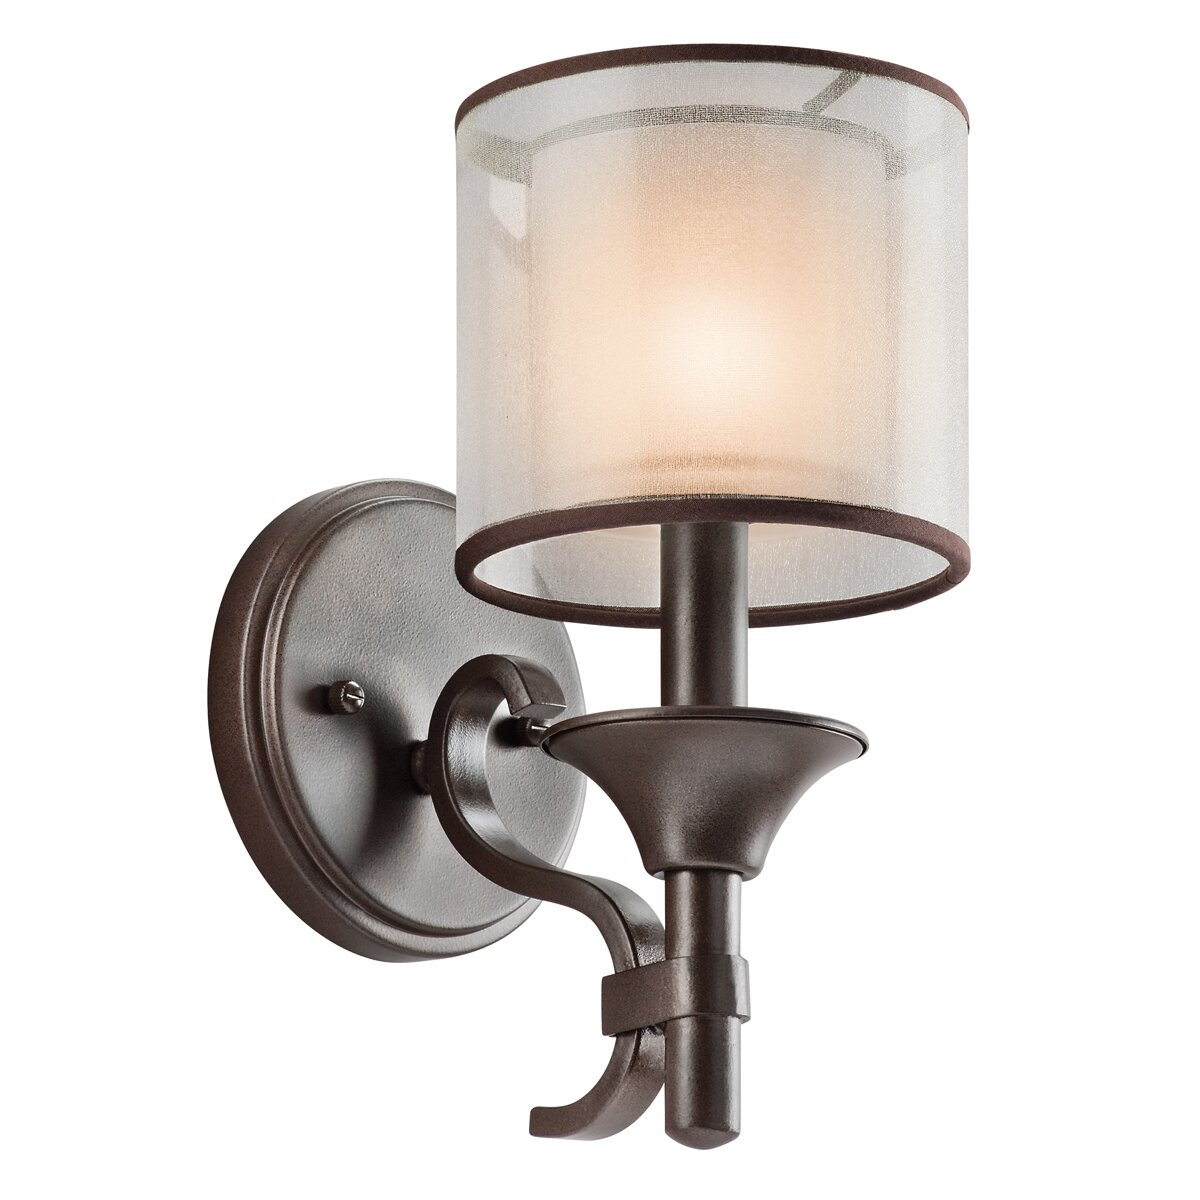 Wall Sconces At Wayfair : Kichler Family Spaces 1 Light Wall Sconce & Reviews Wayfair